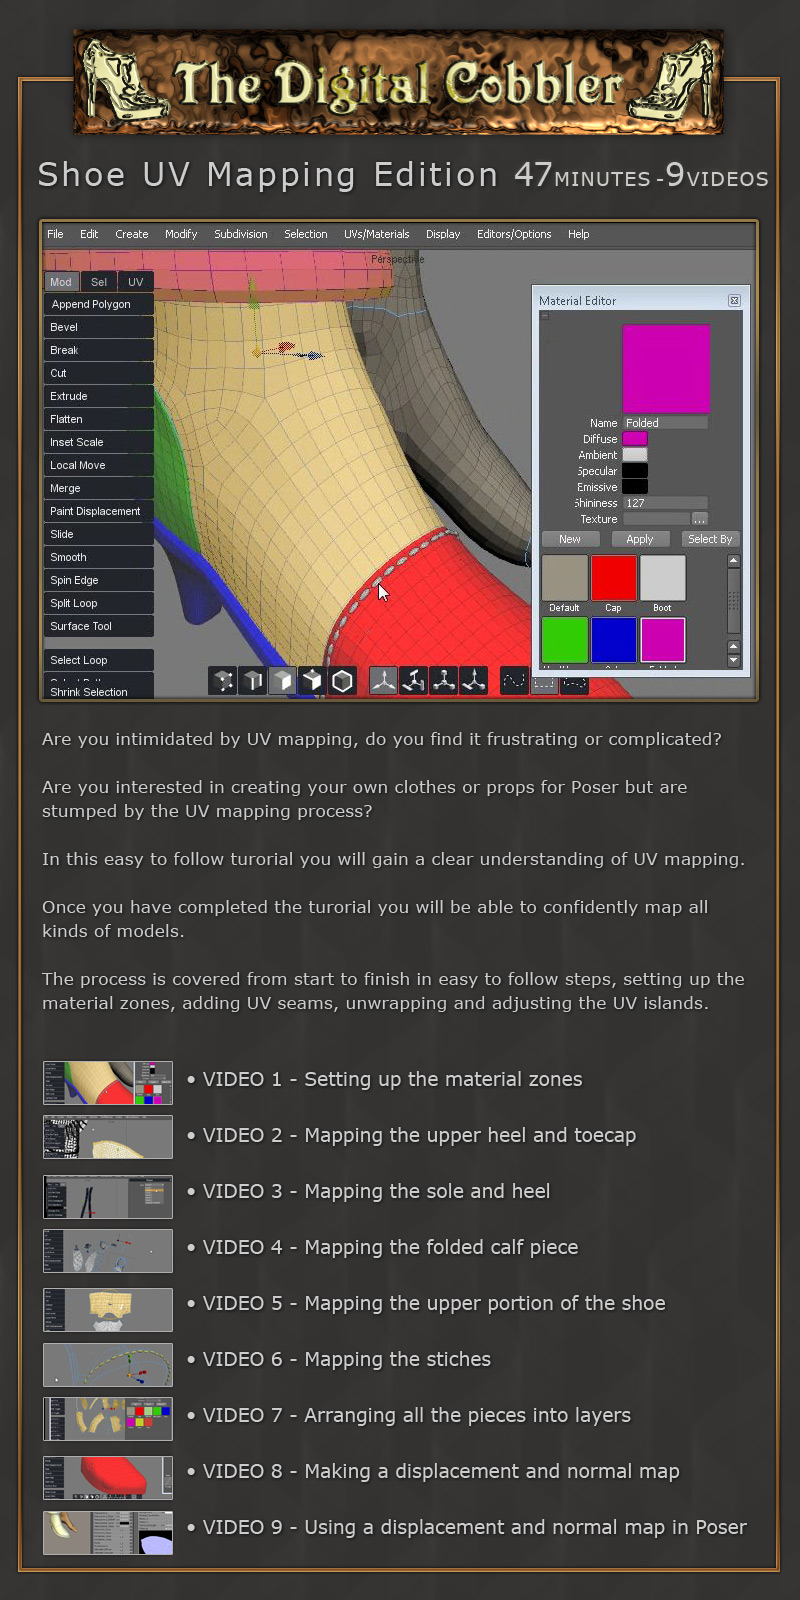 The Digital Cobbler UV Mapping Shoes Set